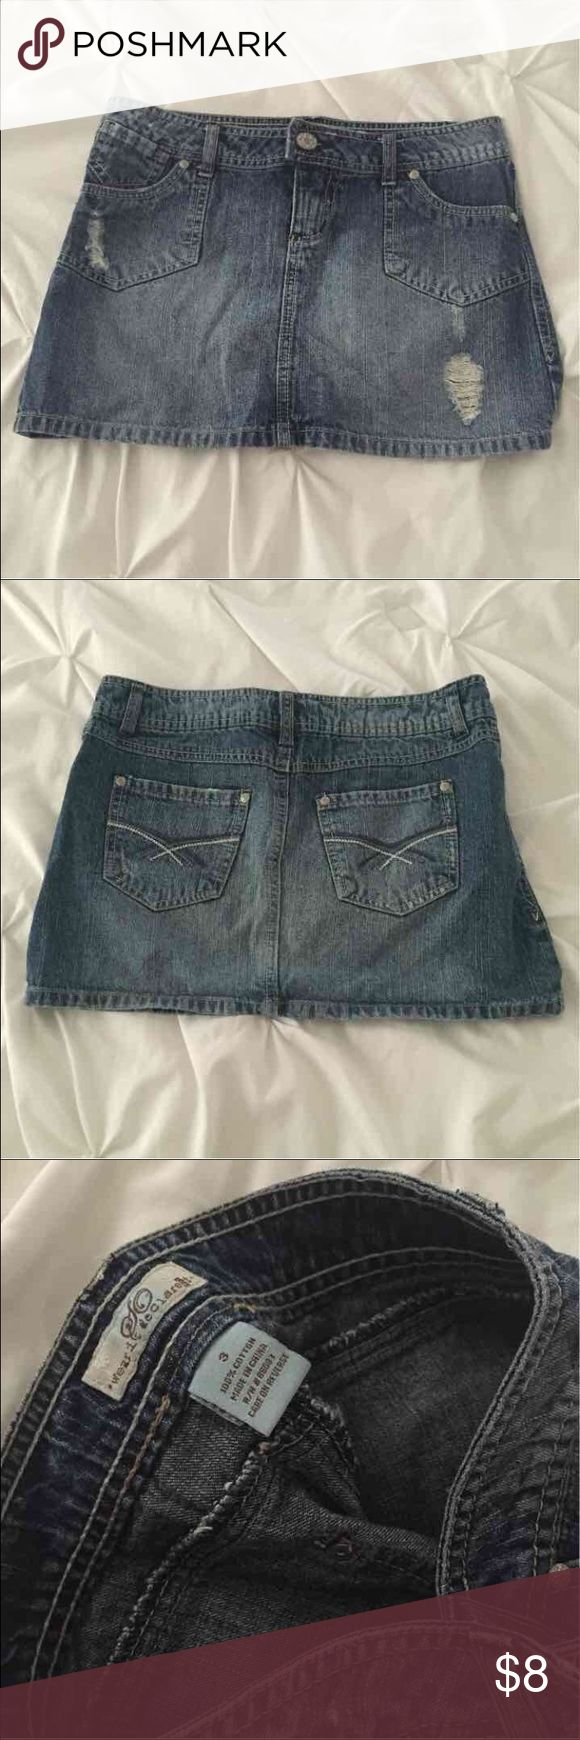 Jean mini denim Jean skirt sz 3 Brand : SQ 100 % cotton denim Size 3 The distressed details are part of the style of the skirt Skirts Mini